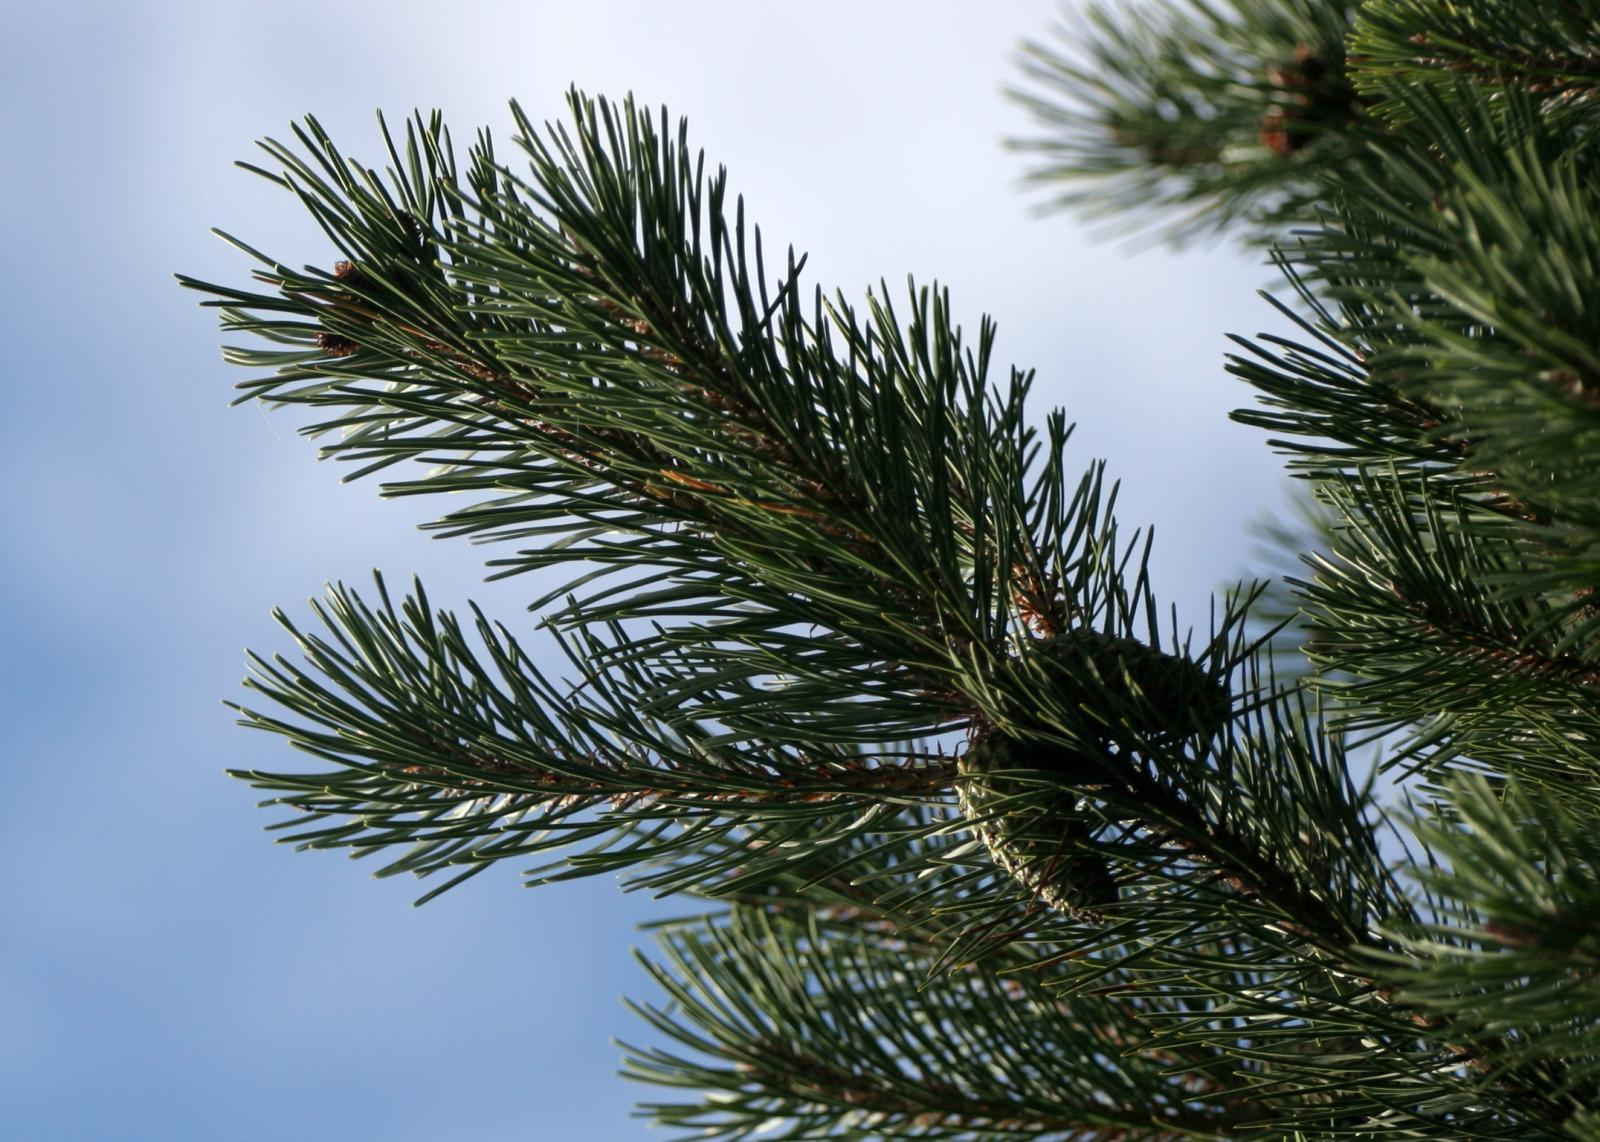 Selecting the Right Tree for the Holidays